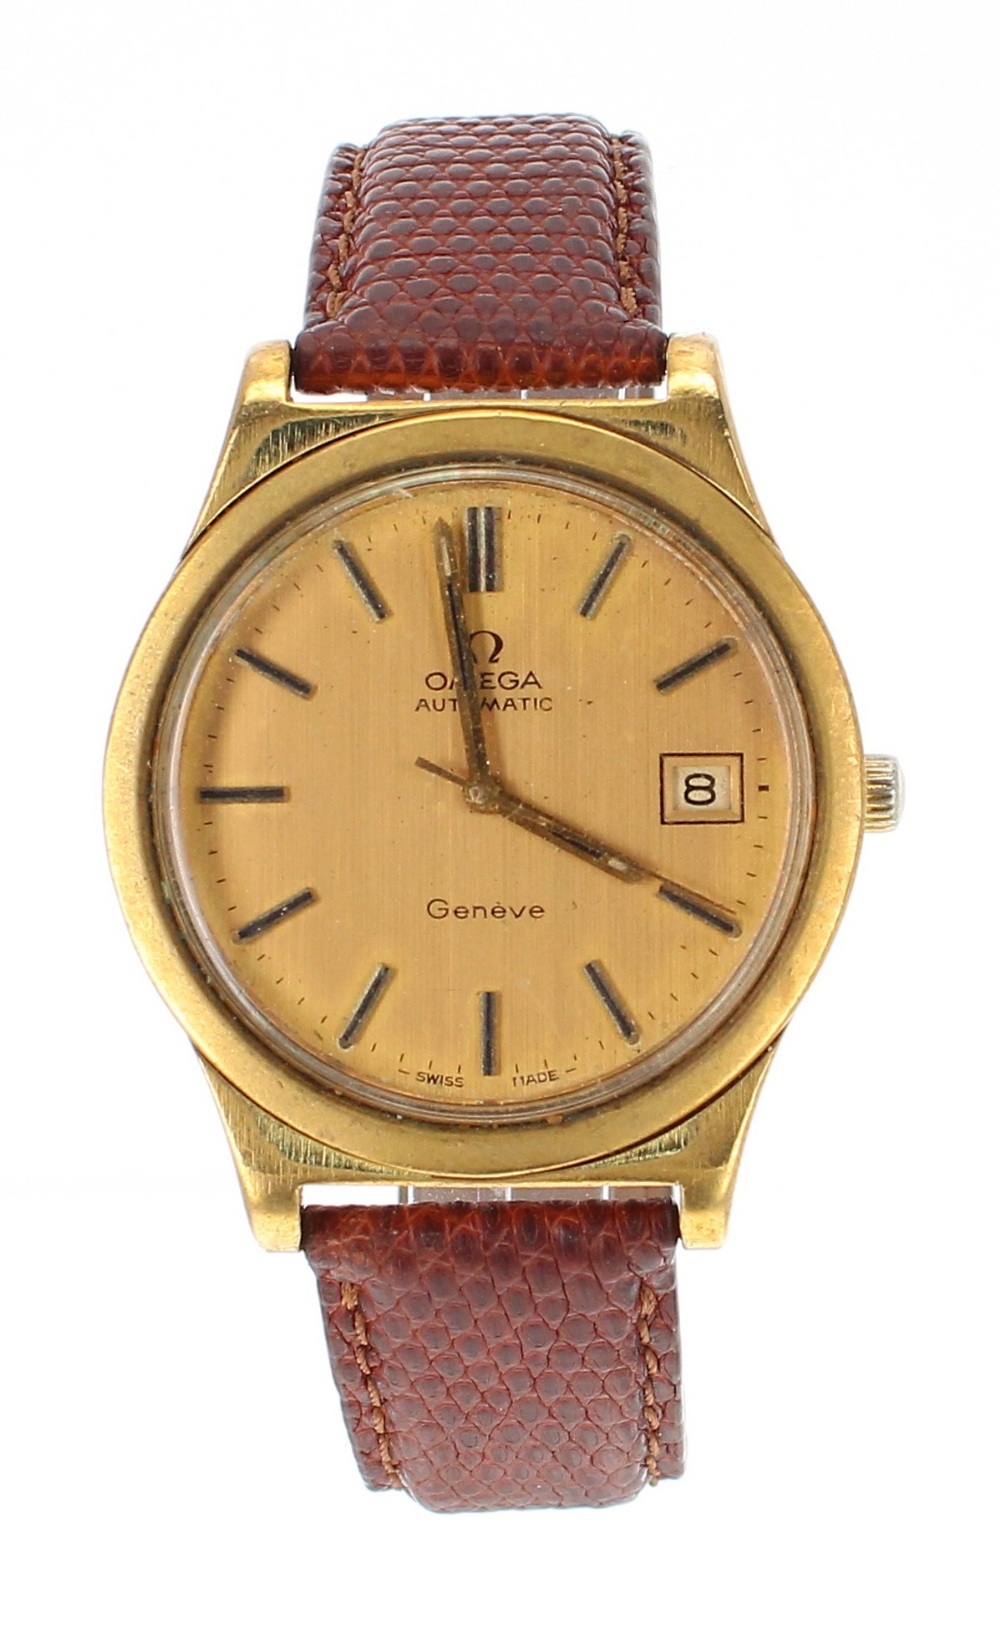 Lot 18 - Omega Genéve automatic gold plated and stainless steel gentleman's wristwatch, ref. 166 0168,